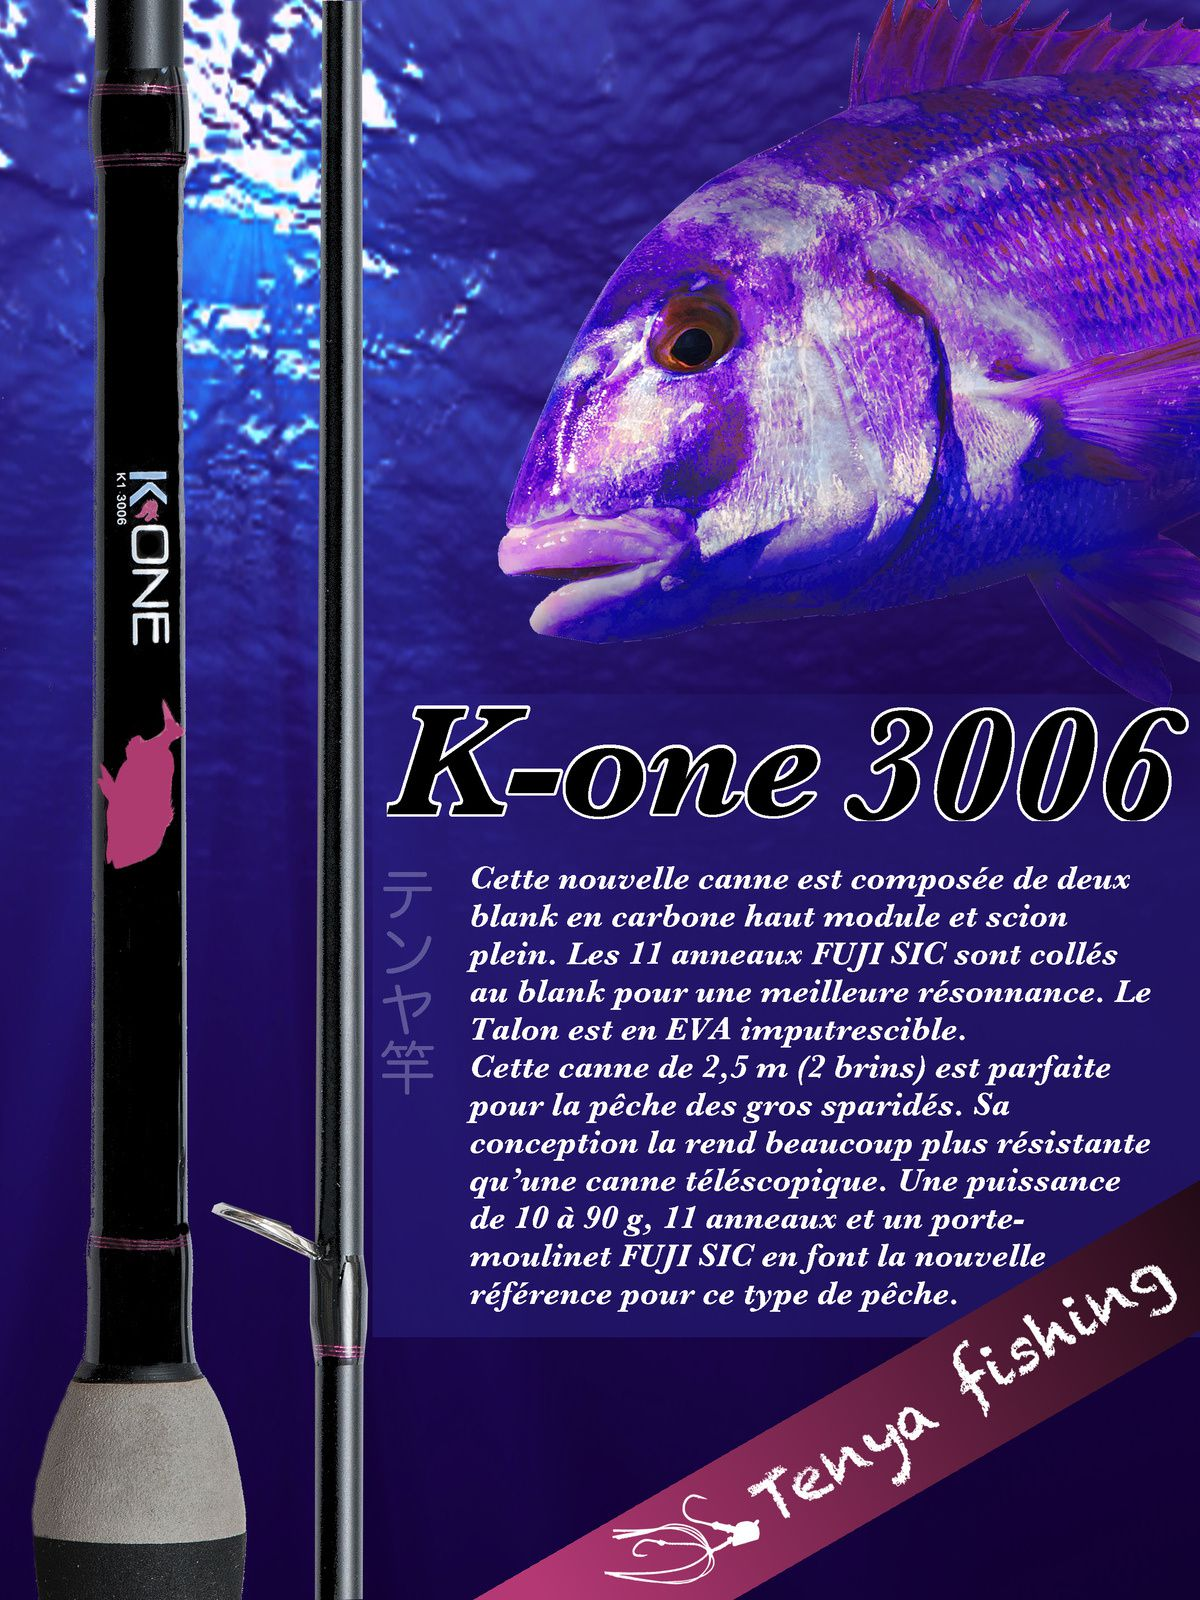 Nouvelle canne K-one 3006